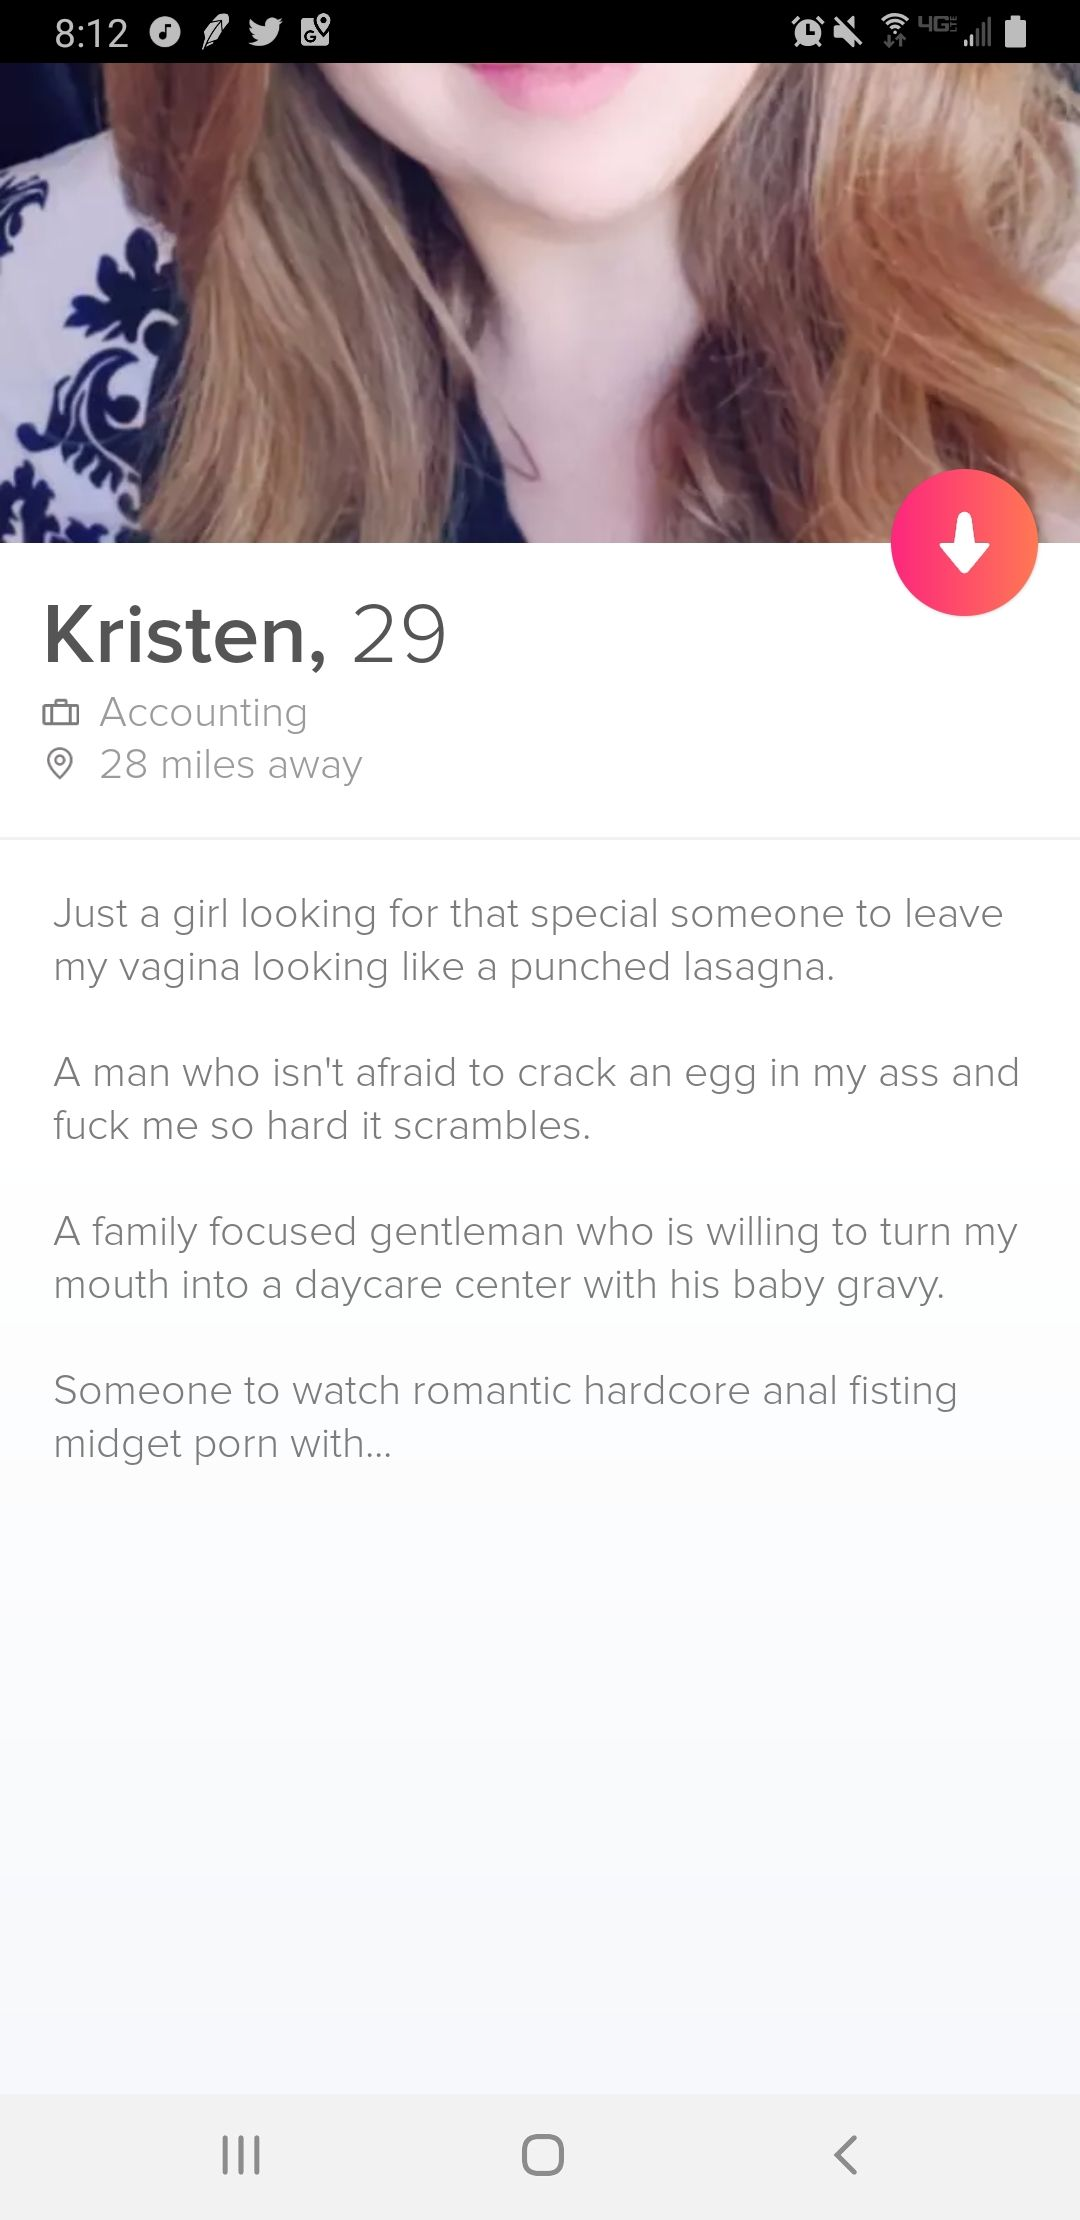 Well at least she knows what she wants